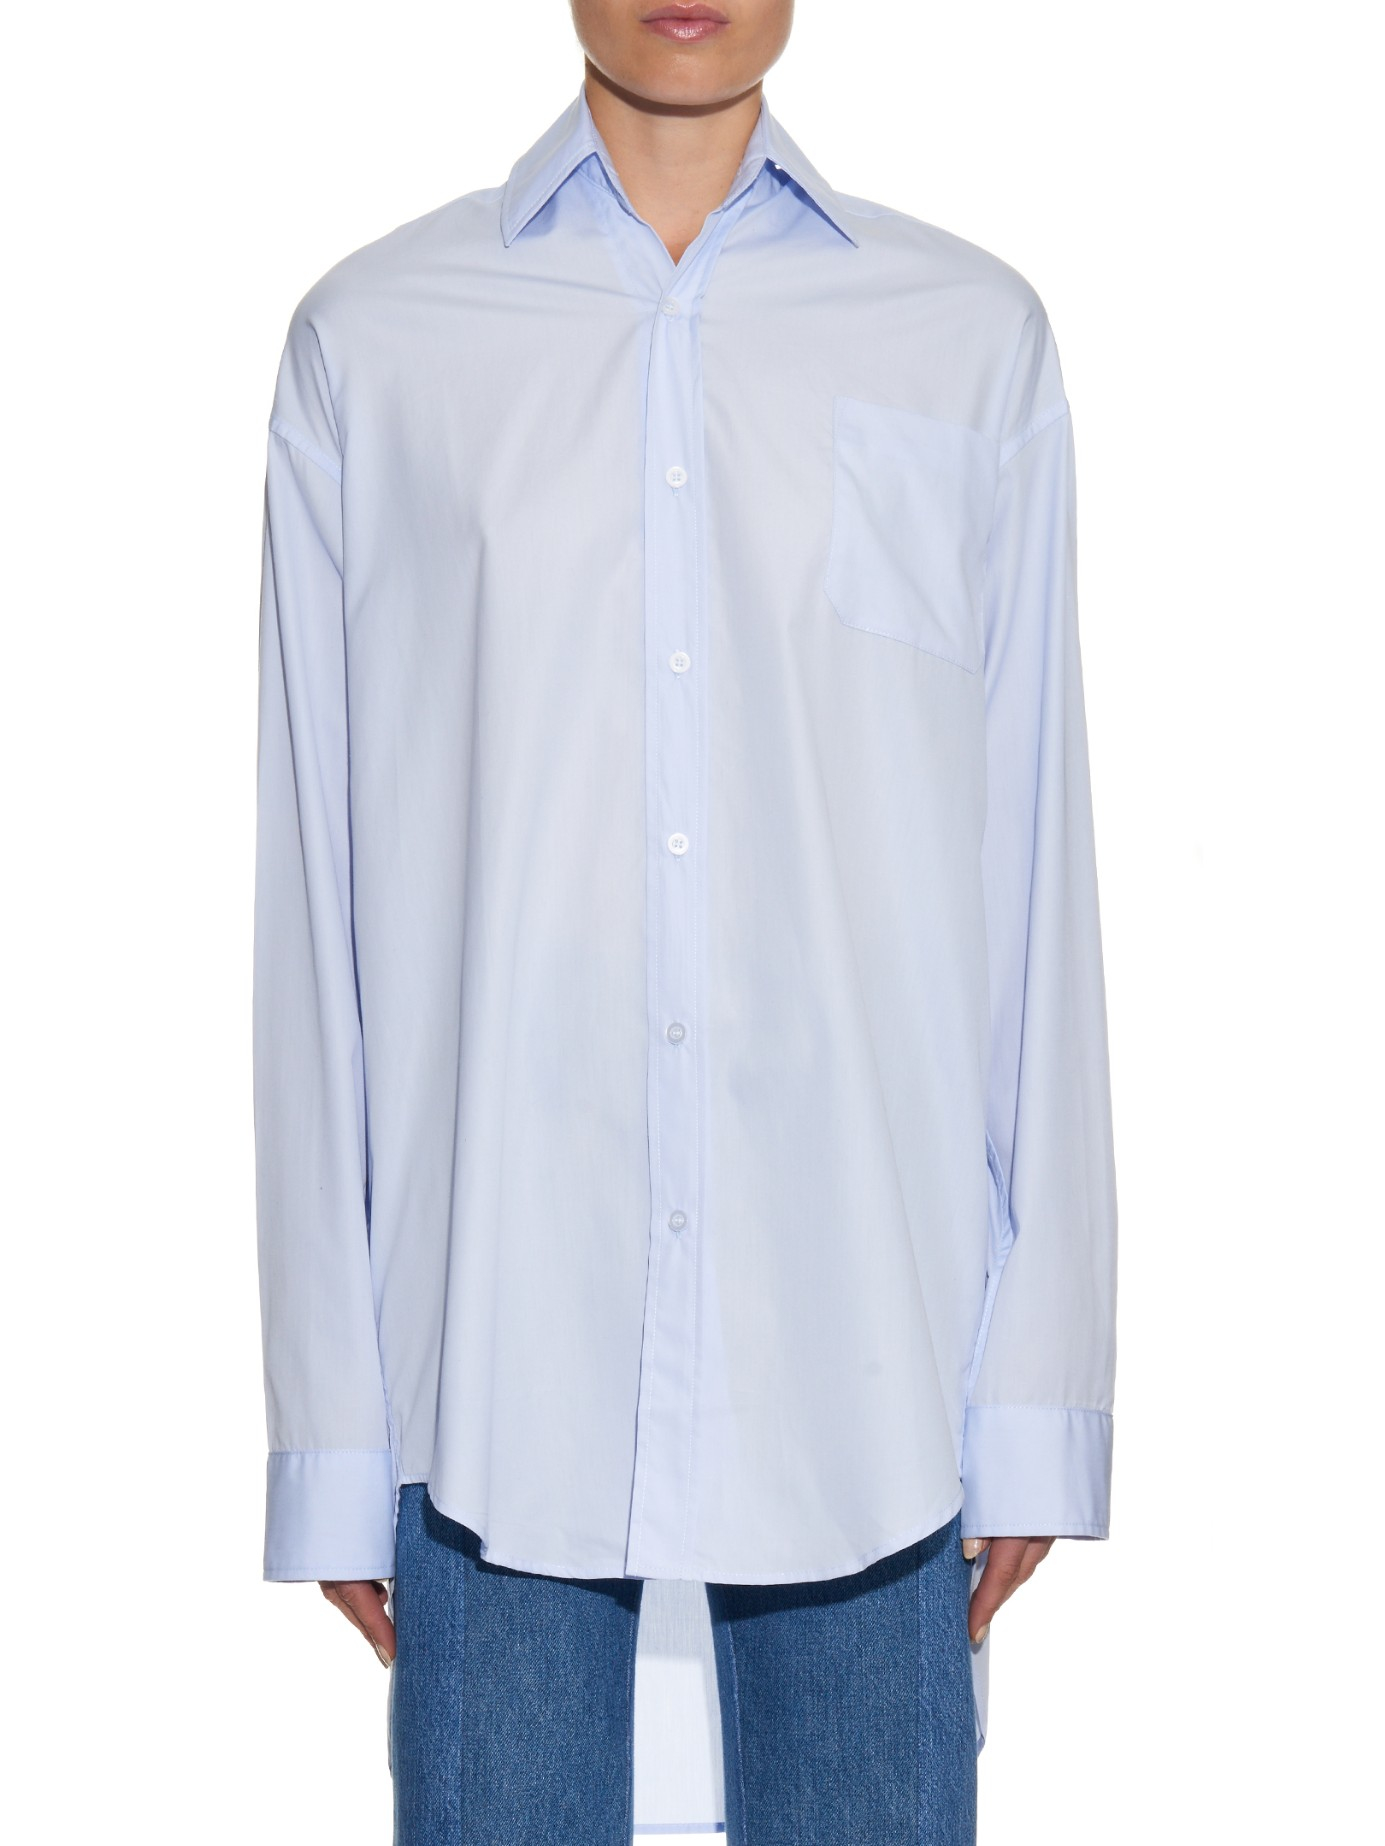 Find great deals on eBay for oversized shirts. Shop with confidence.